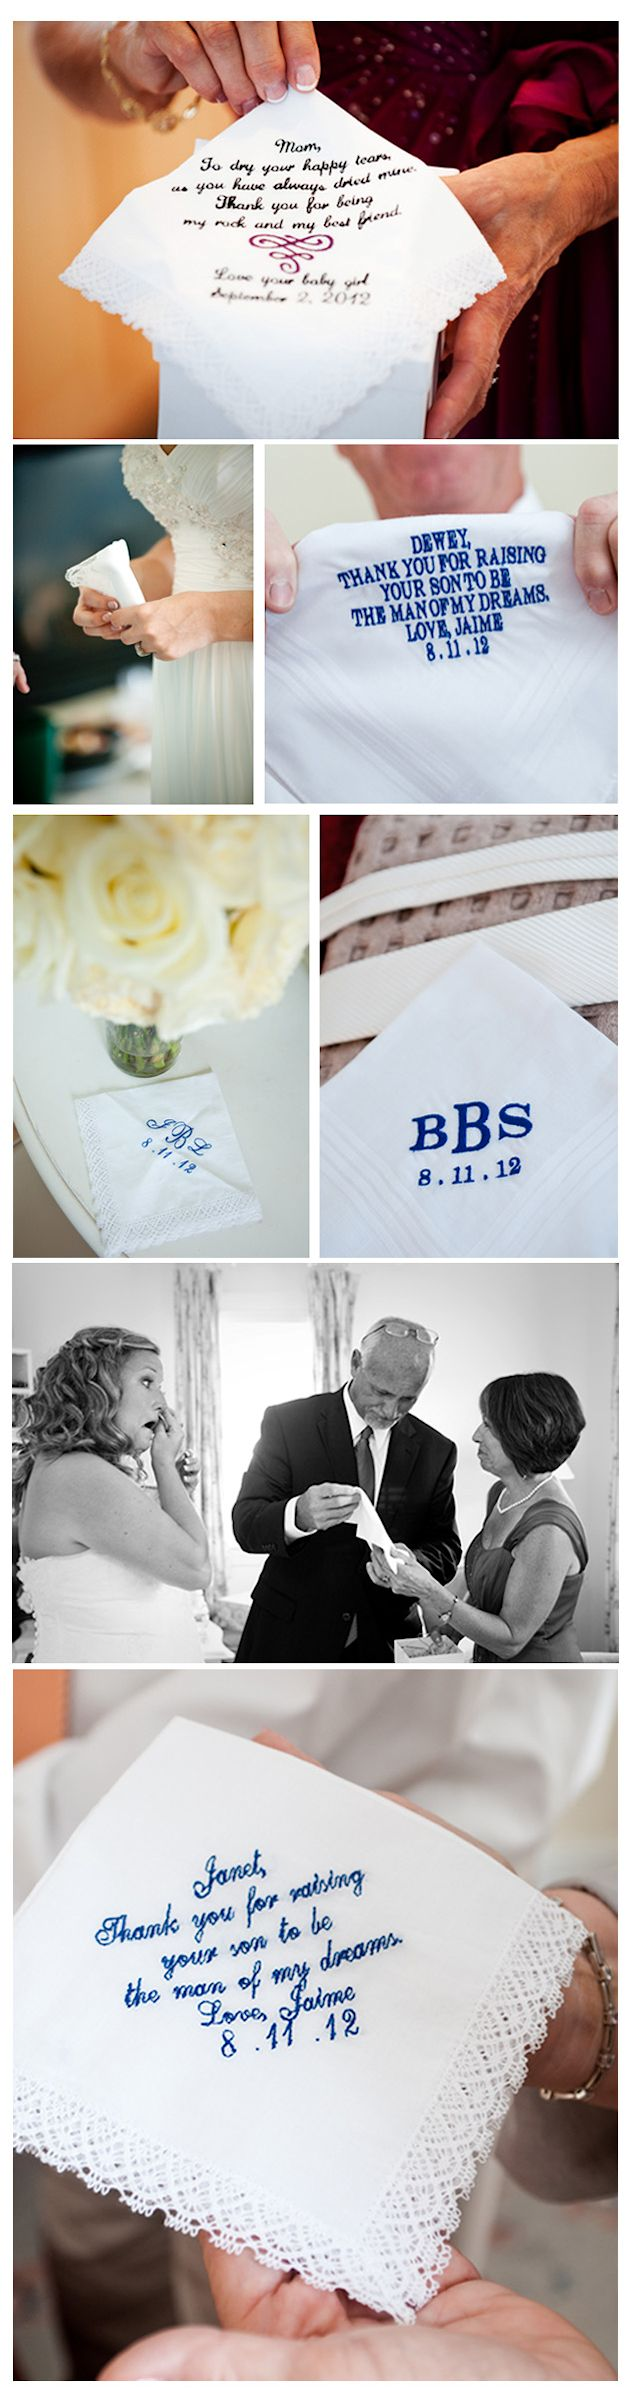 Eastern Shore Wedding Details - Personalized Handkerchiefs